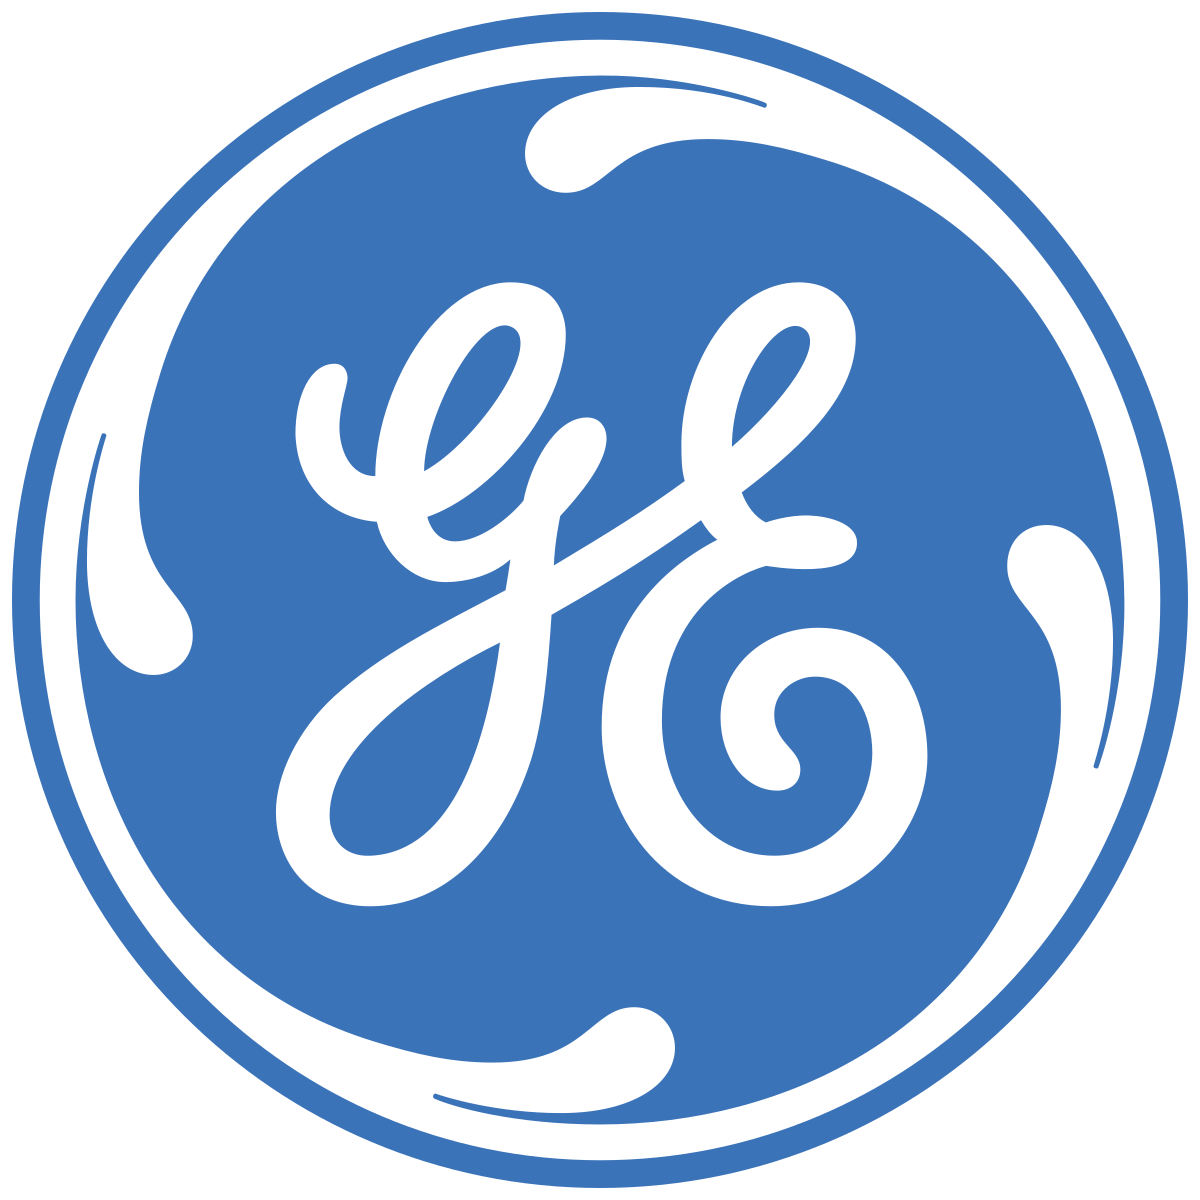 General Electric Printer Support Phone Number